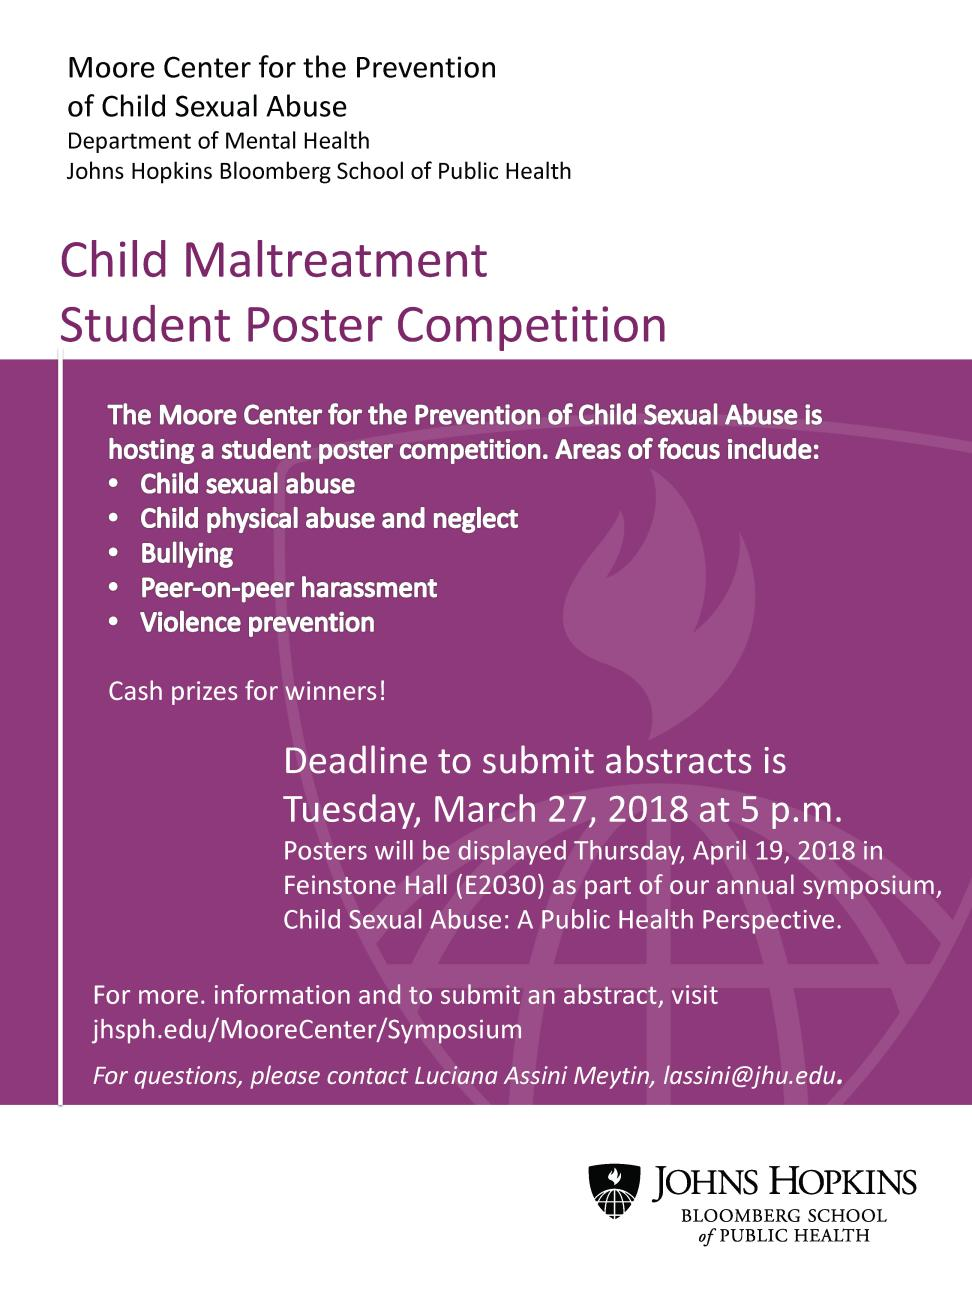 Student Poster Competition